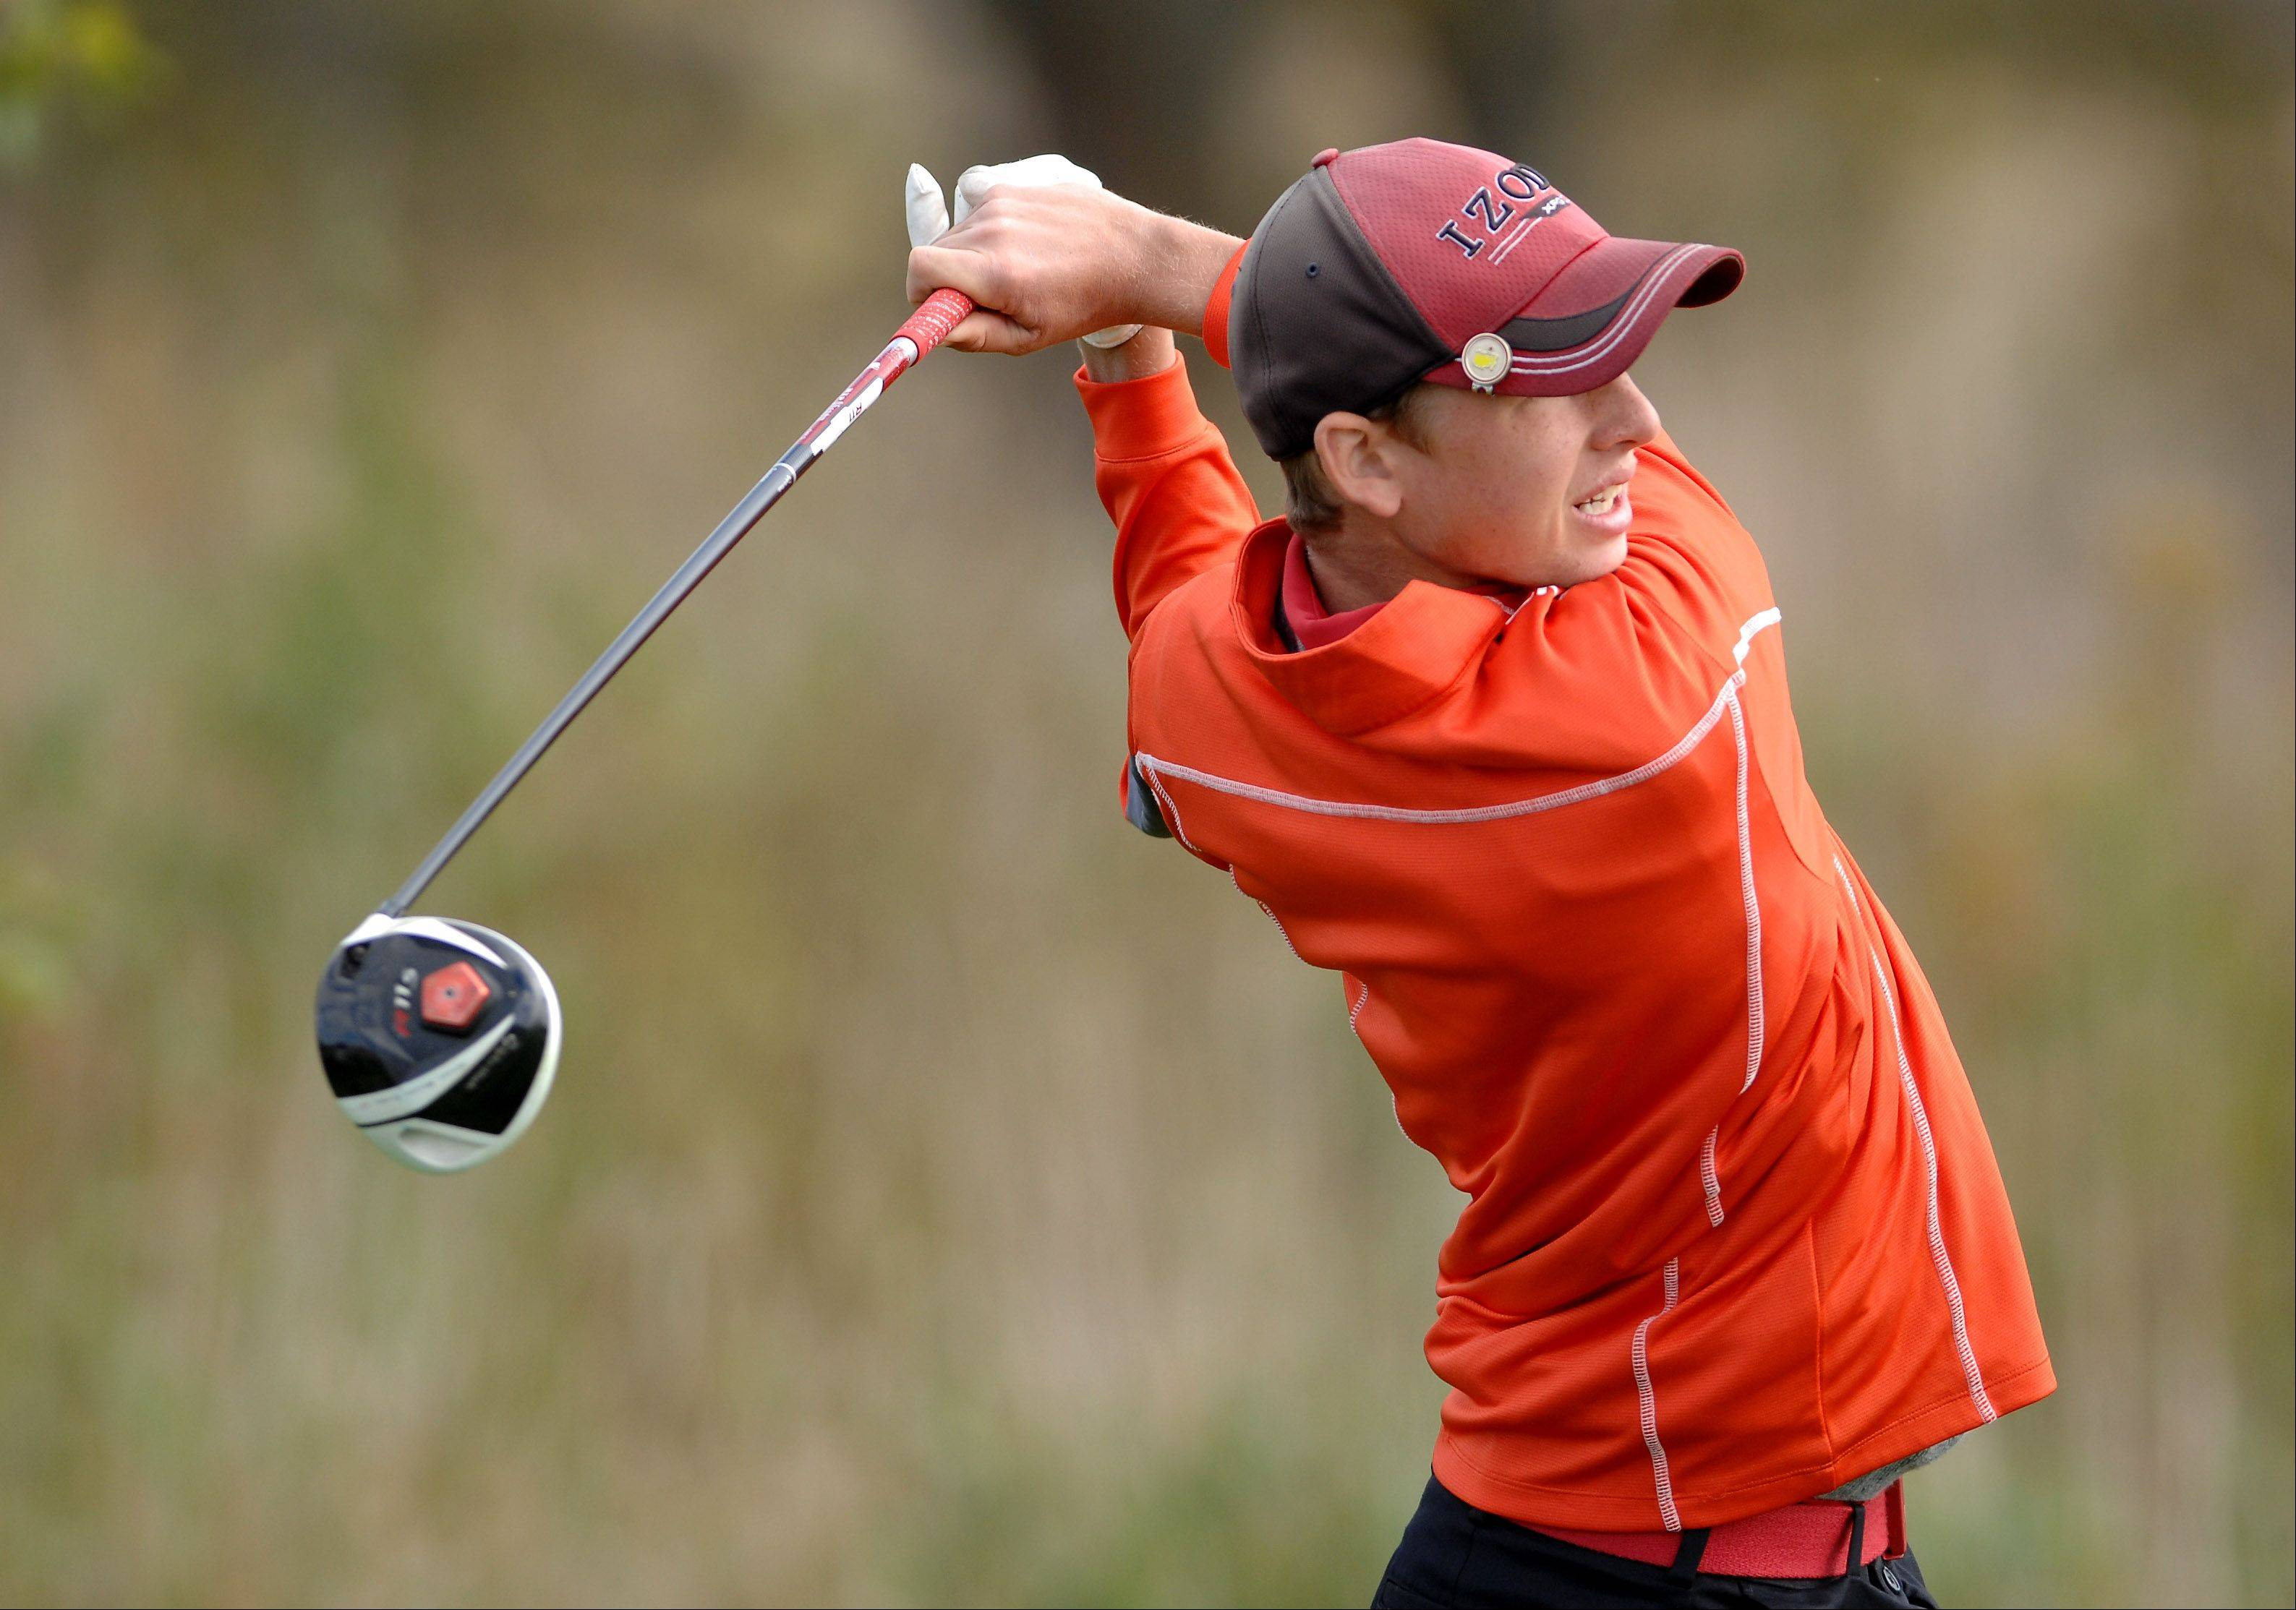 Brad Spoeth of Huntley tees off during the Huntley boys golf sectional at Blackstone Golf Club in Marengo.